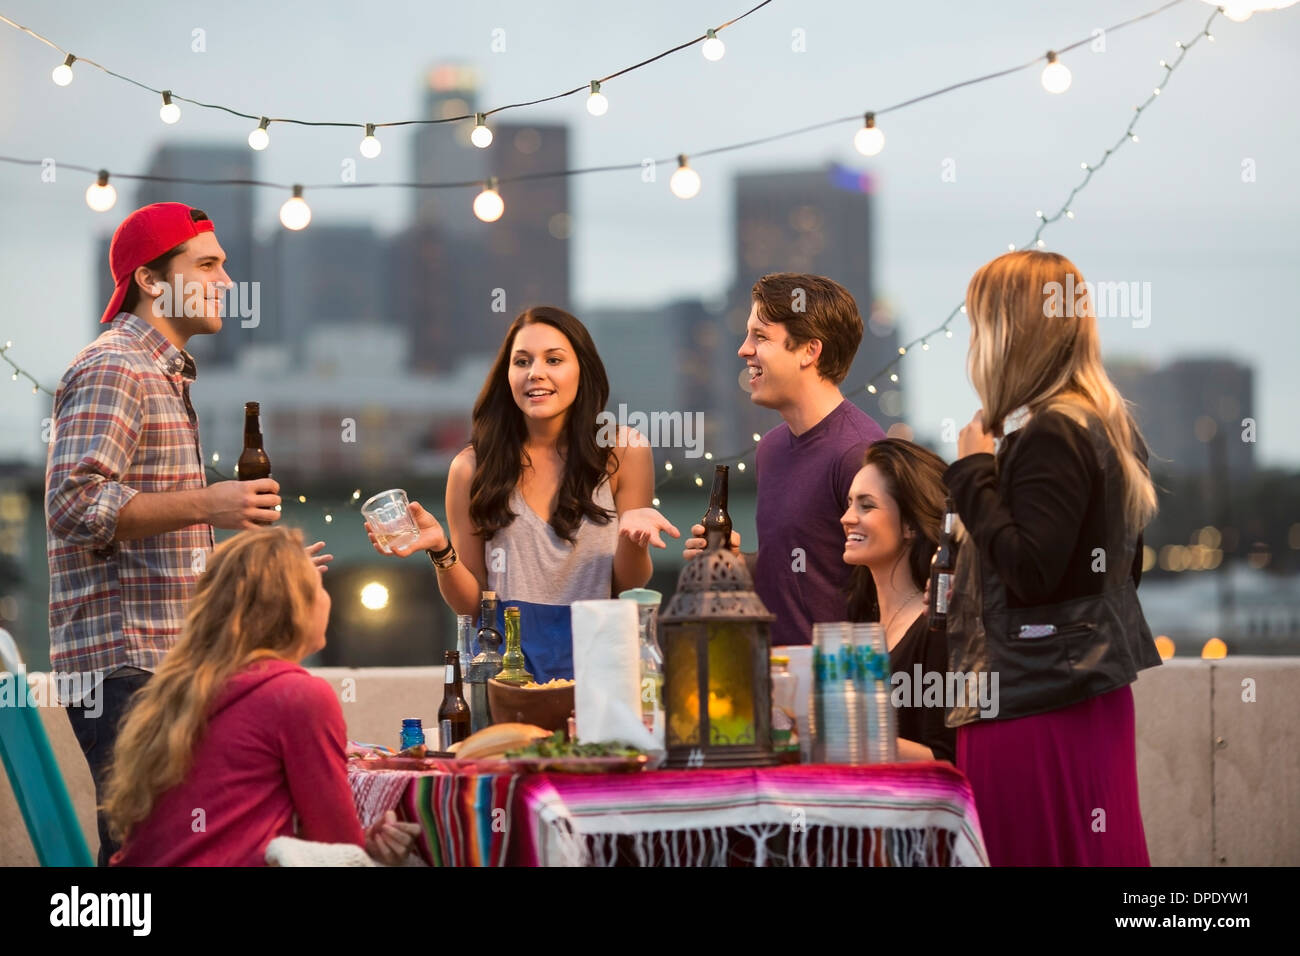 Young adult friends having fun at barbeque - Stock Image